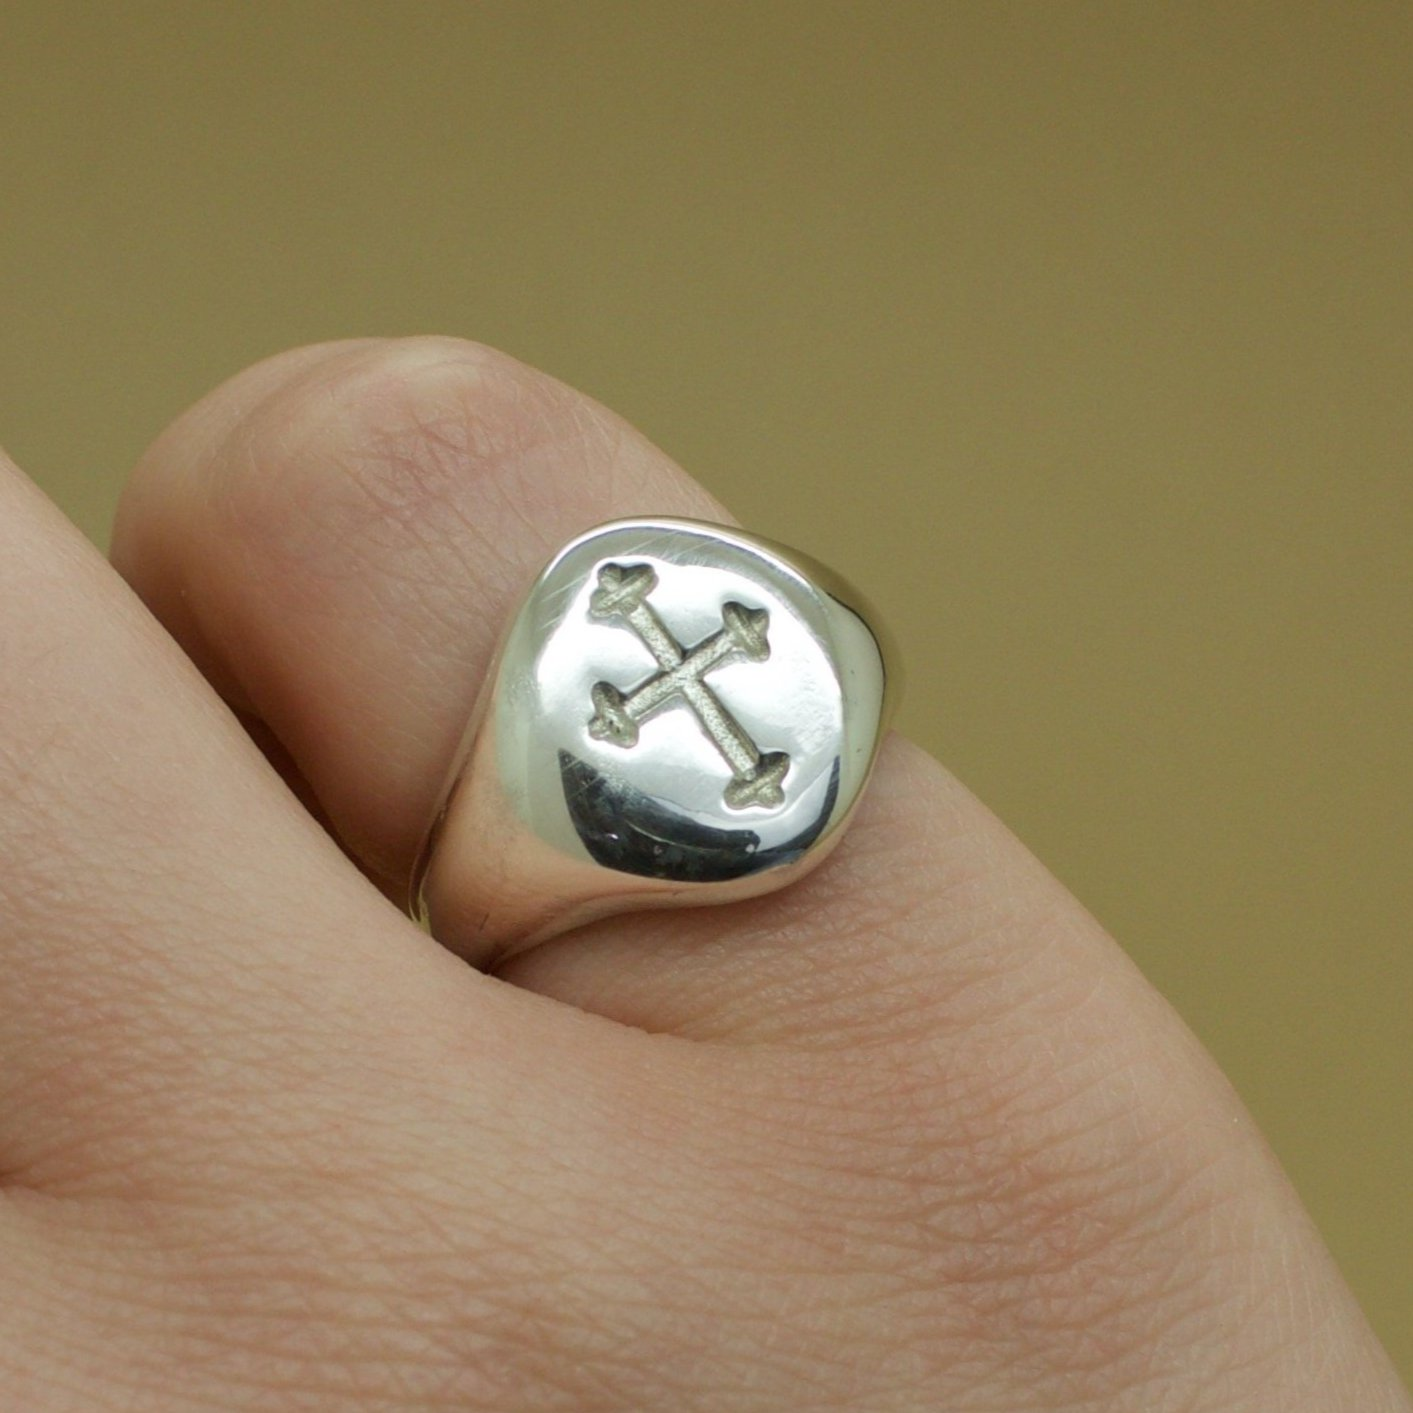 Ready To Ship ✦ Medieval Cross Engraved Signet Ring (Silver US 7.5/ UK O) - Ring The Serpents Club